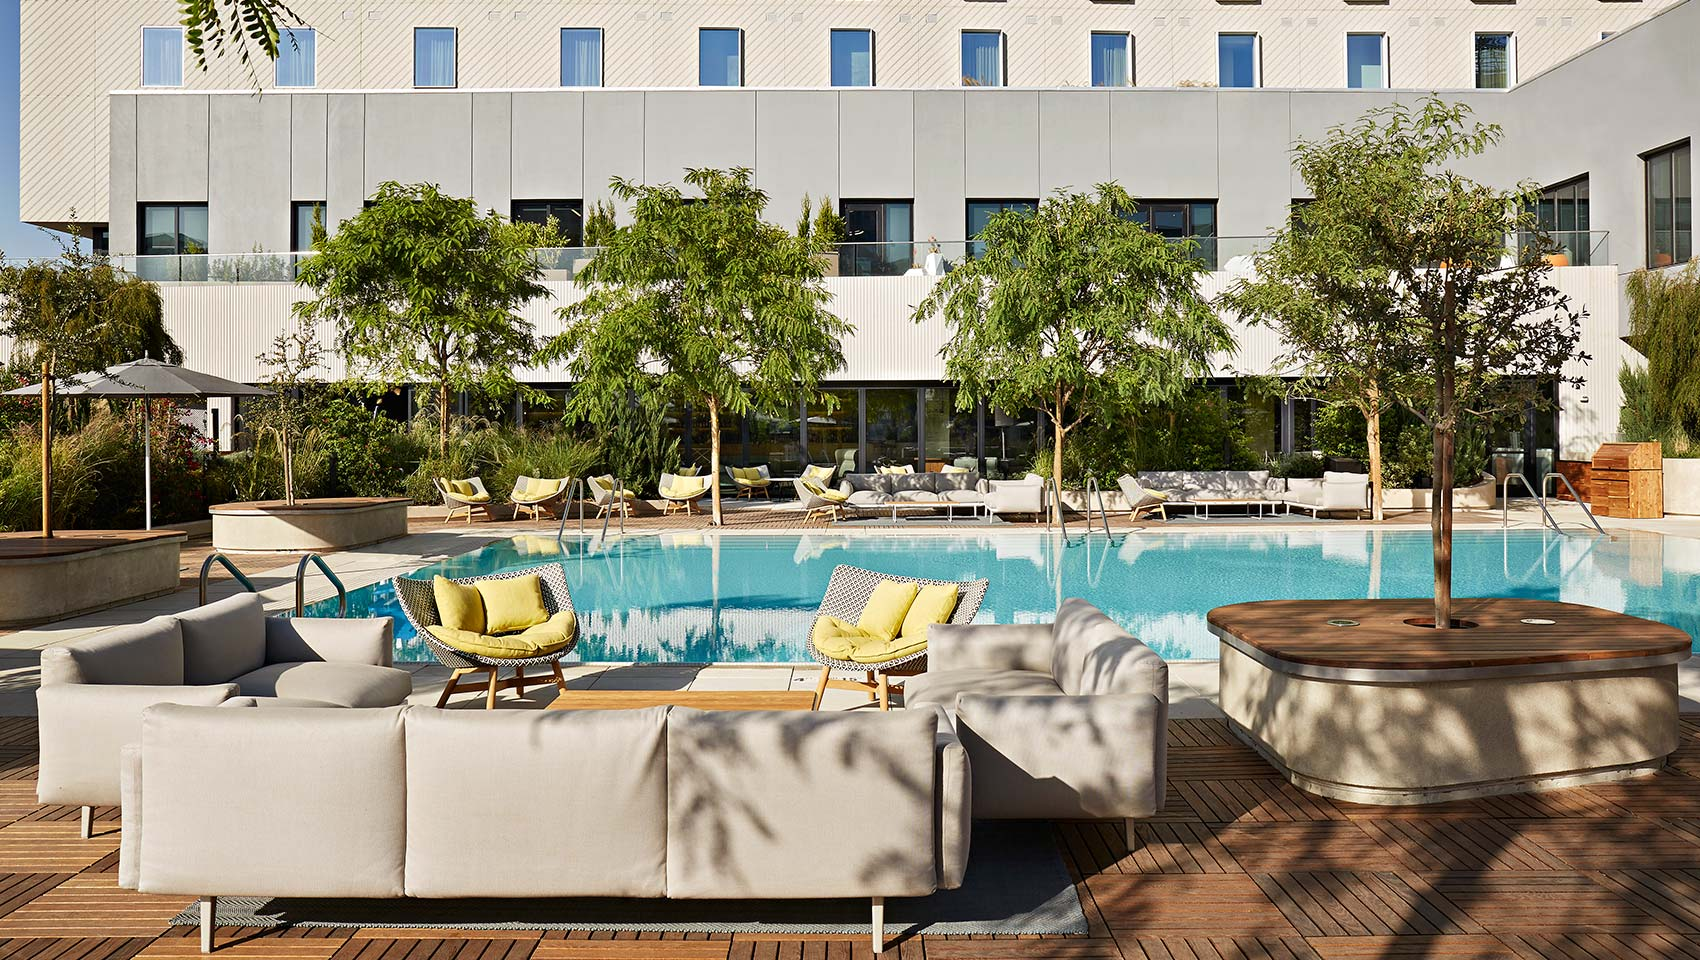 kimpton saweyer hotel pool deck in sacramento